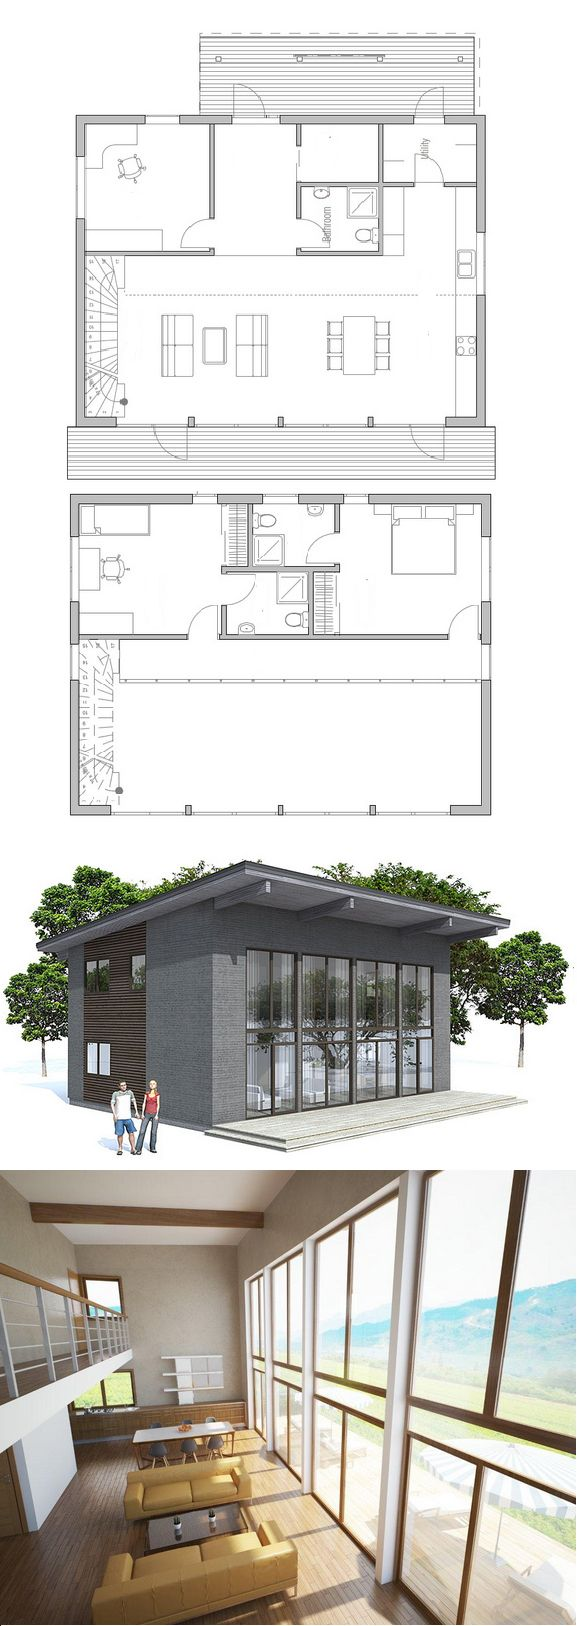 Floor plan ch50 from floor plans for Concept home com